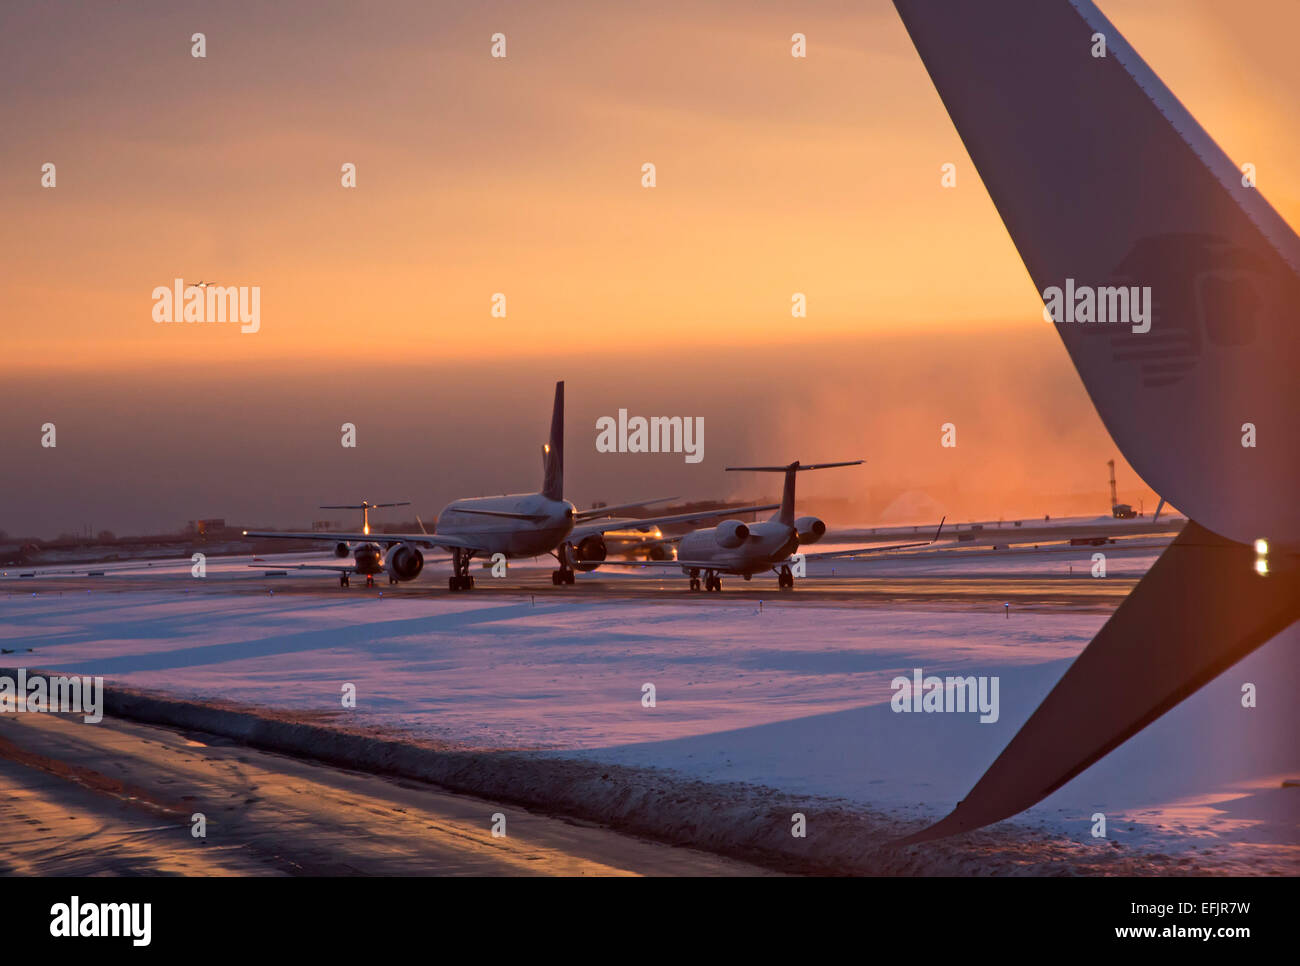 Chicago, Illinois - Early morning flights arriving and departing at O'Hare International Airport. - Stock Image